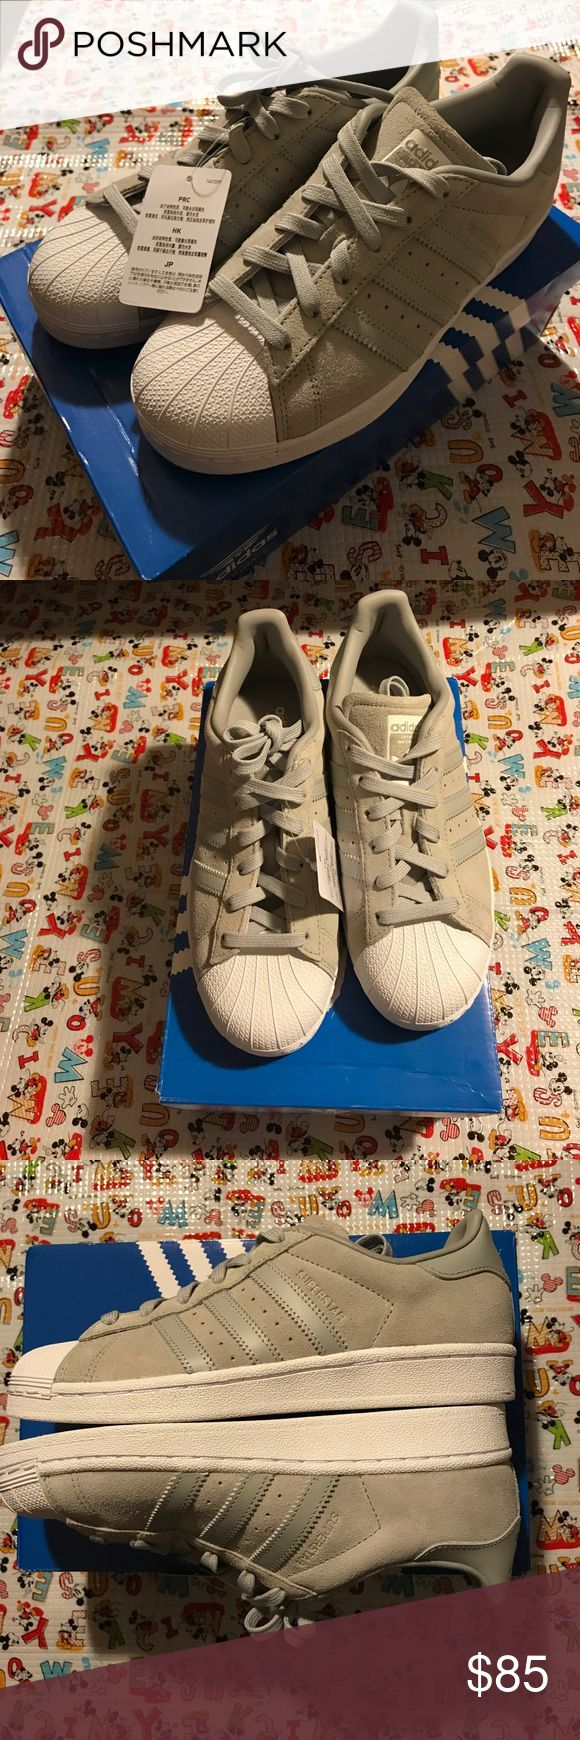 Adidas Superstar gray suede sneakers Brand new adidas superstar adidas Shoes Sneakers